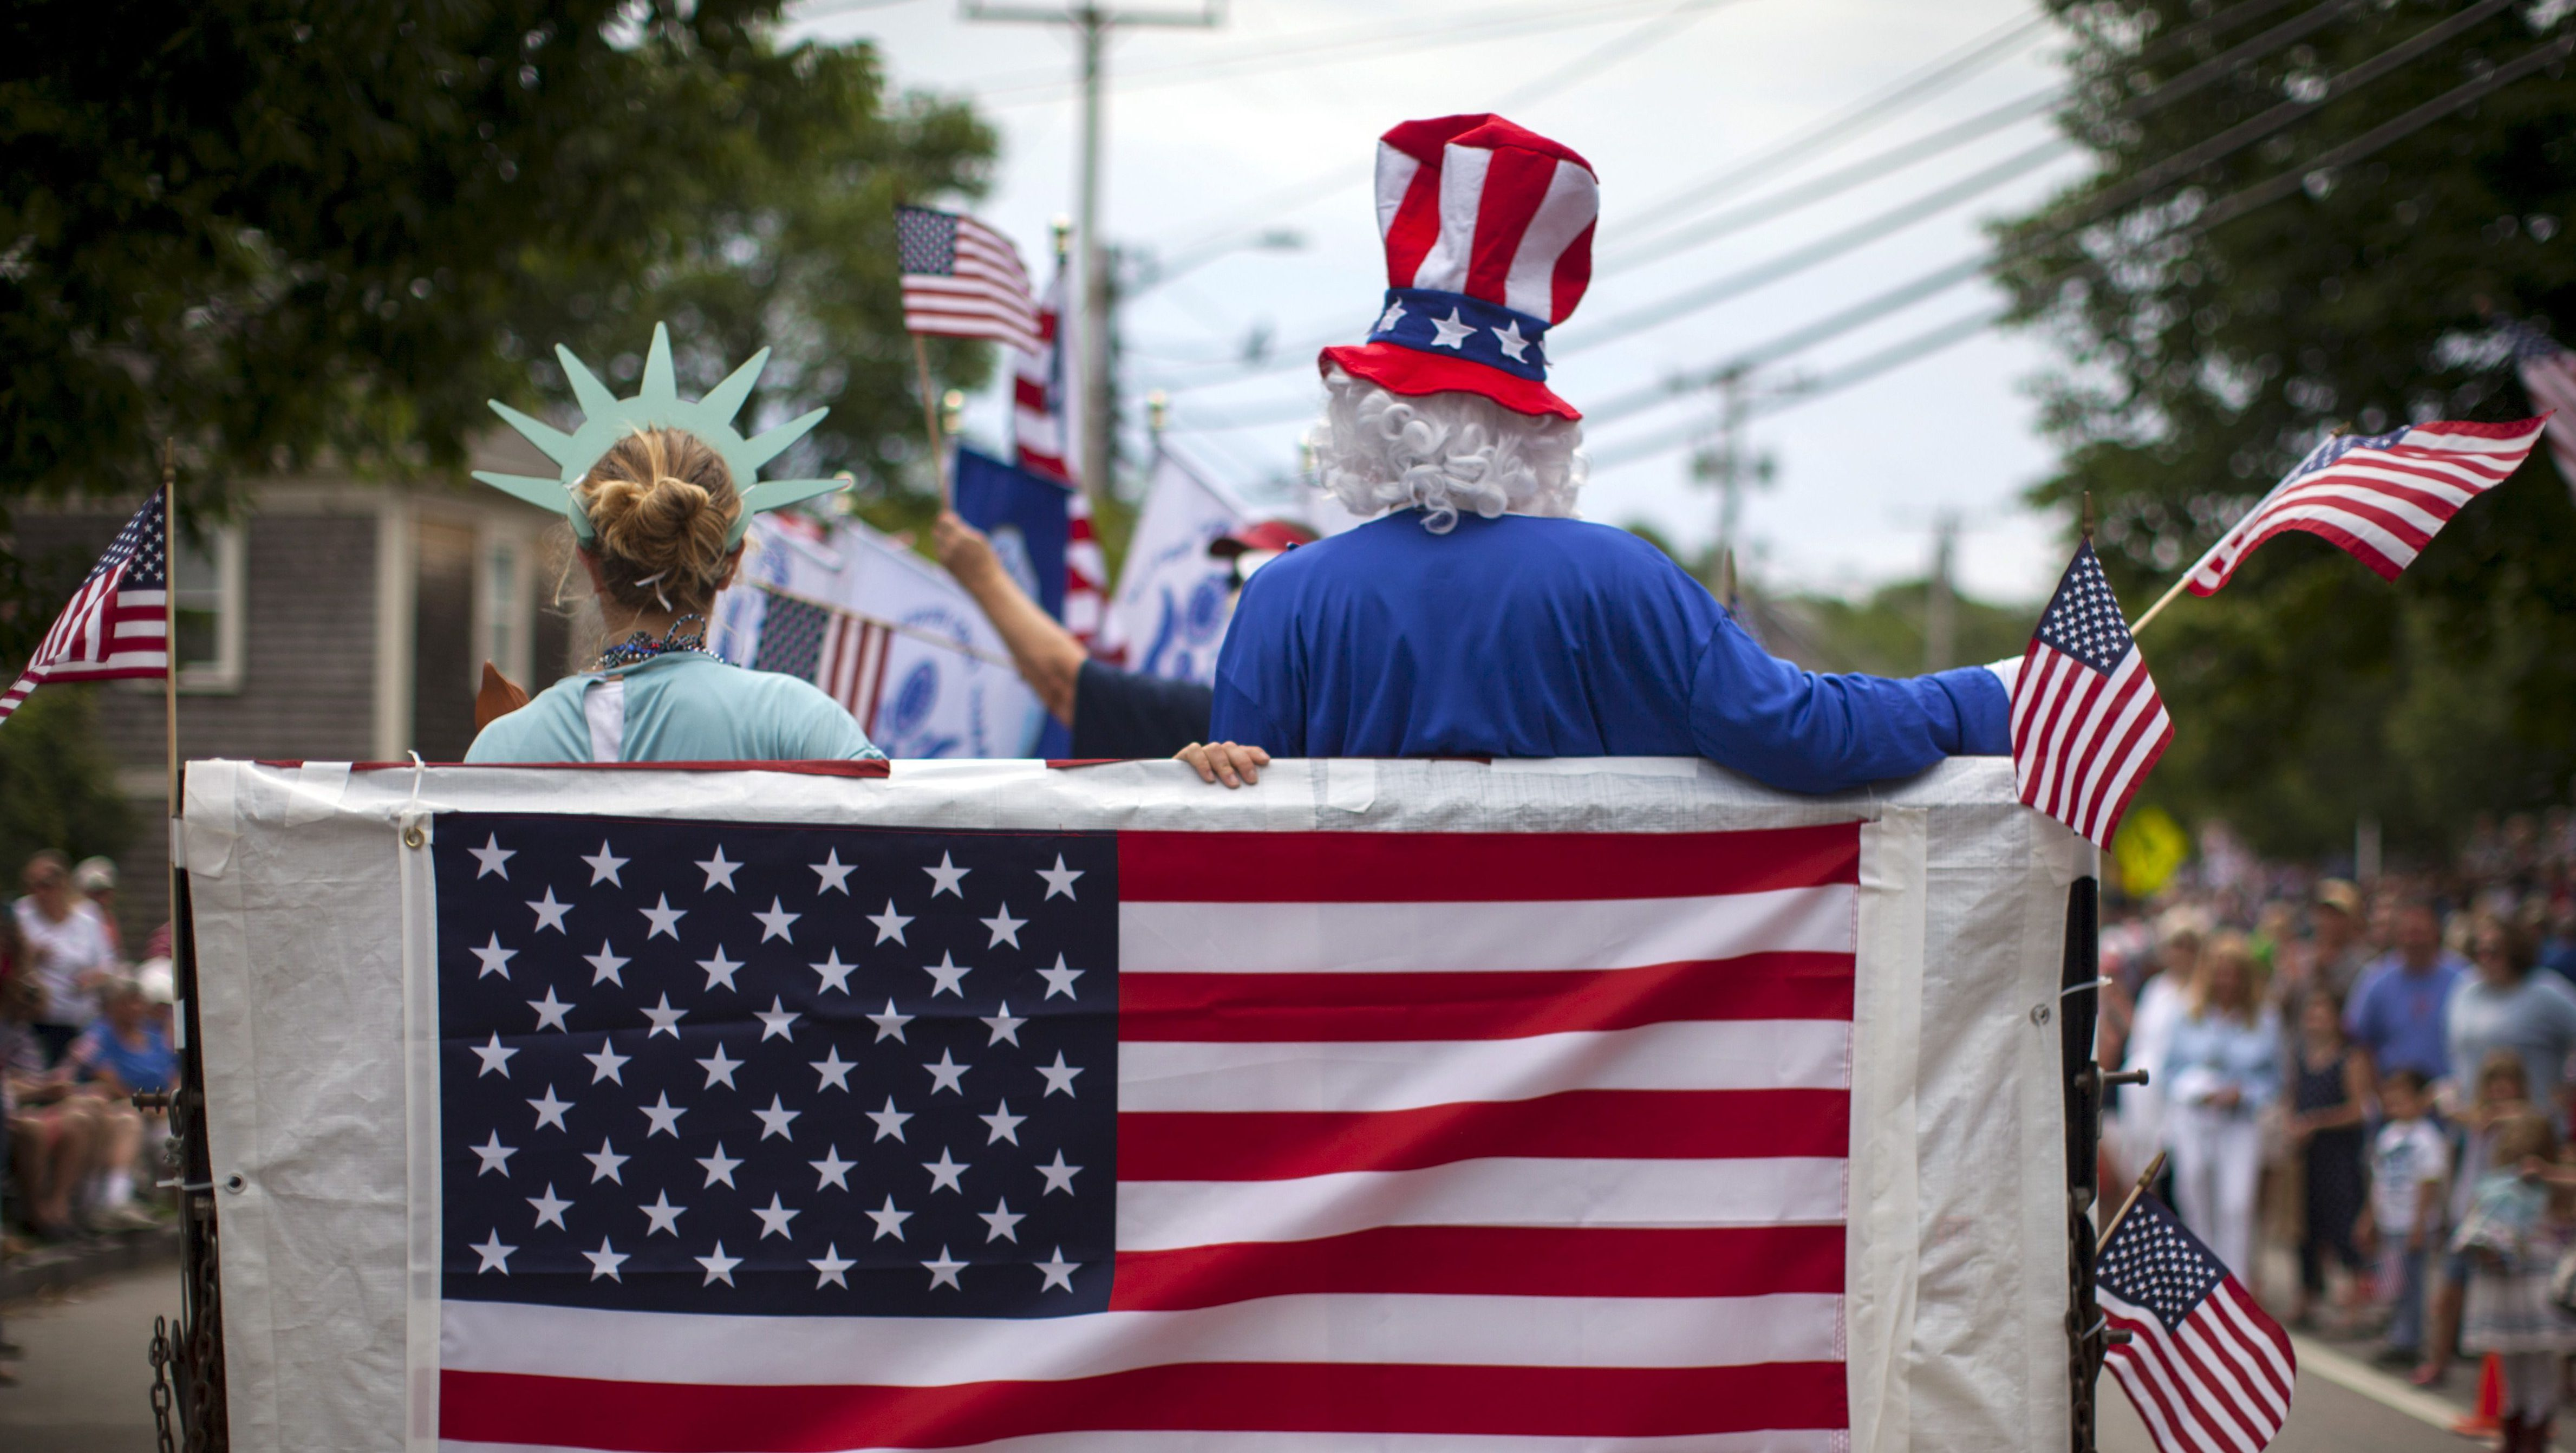 People in costumes ride on a float through Barnstable Village on Cape Cod during the annual 4th of July Parade in Barnstable